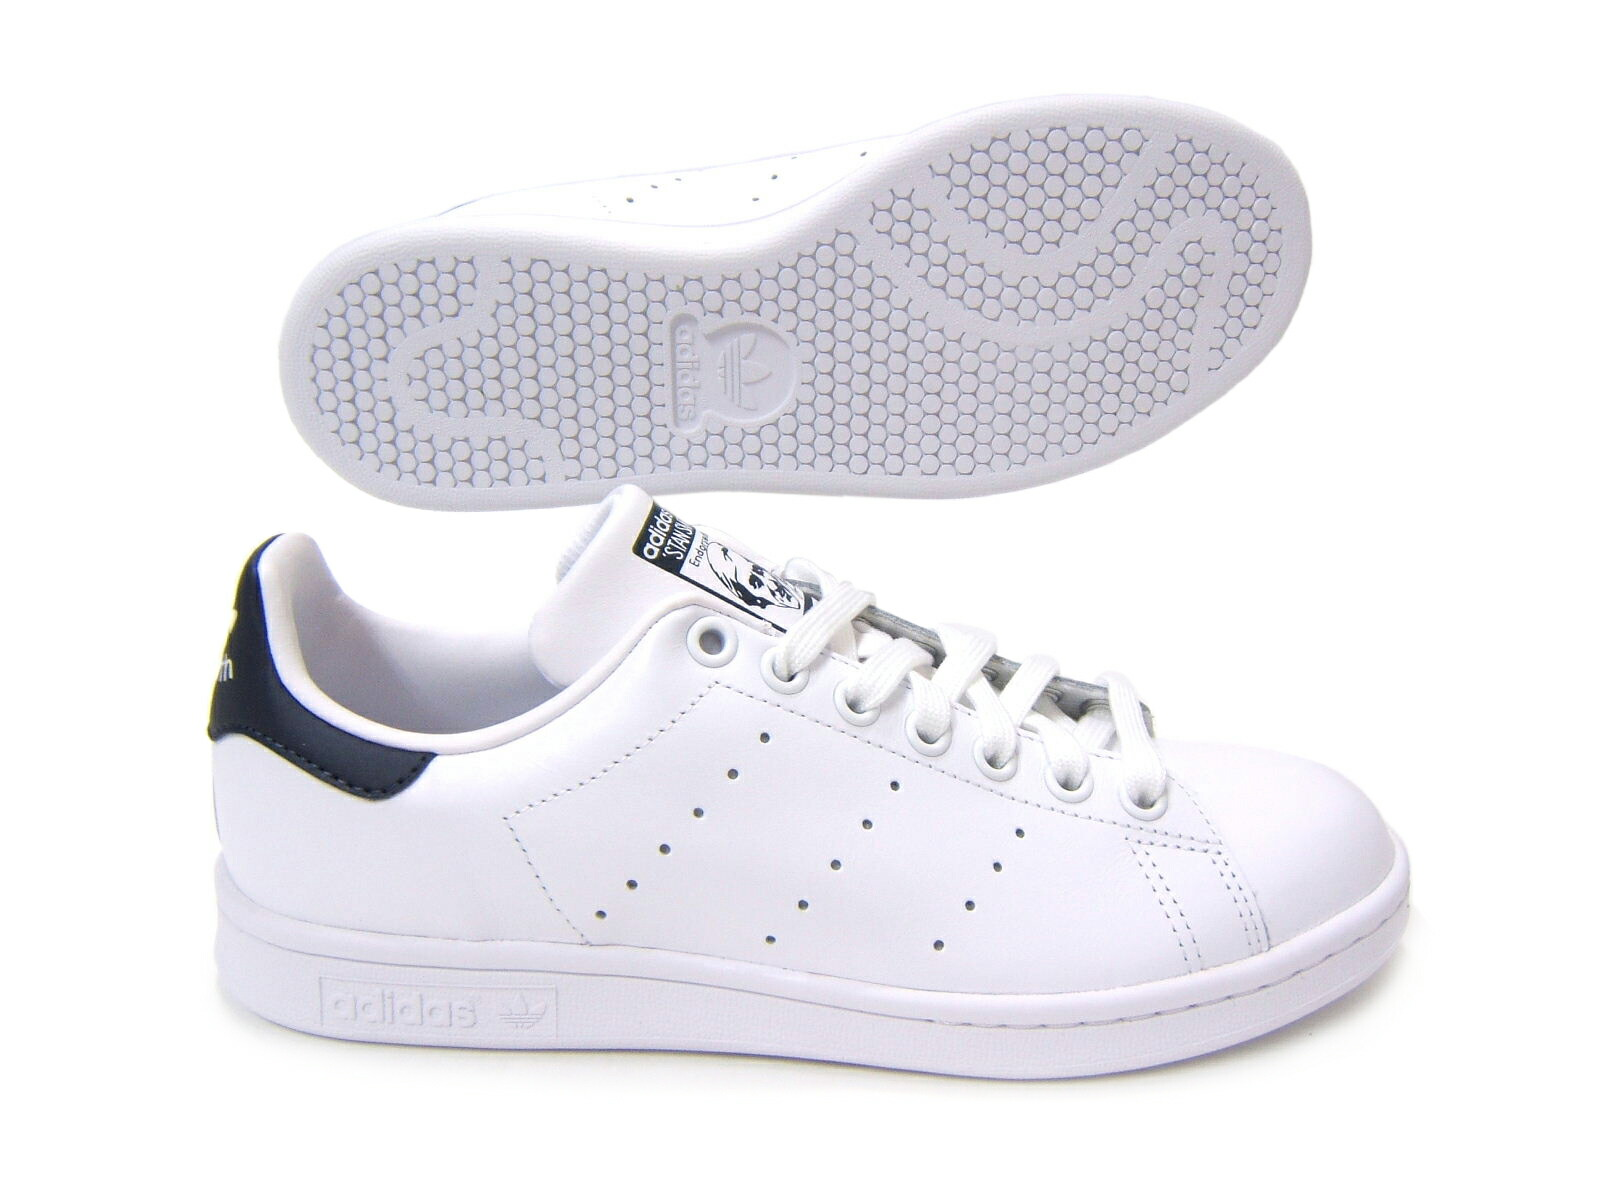 best sneakers 0199d 04f76 takeiteasy: Buzz (soled) platform outsole. adidas and adidas ...